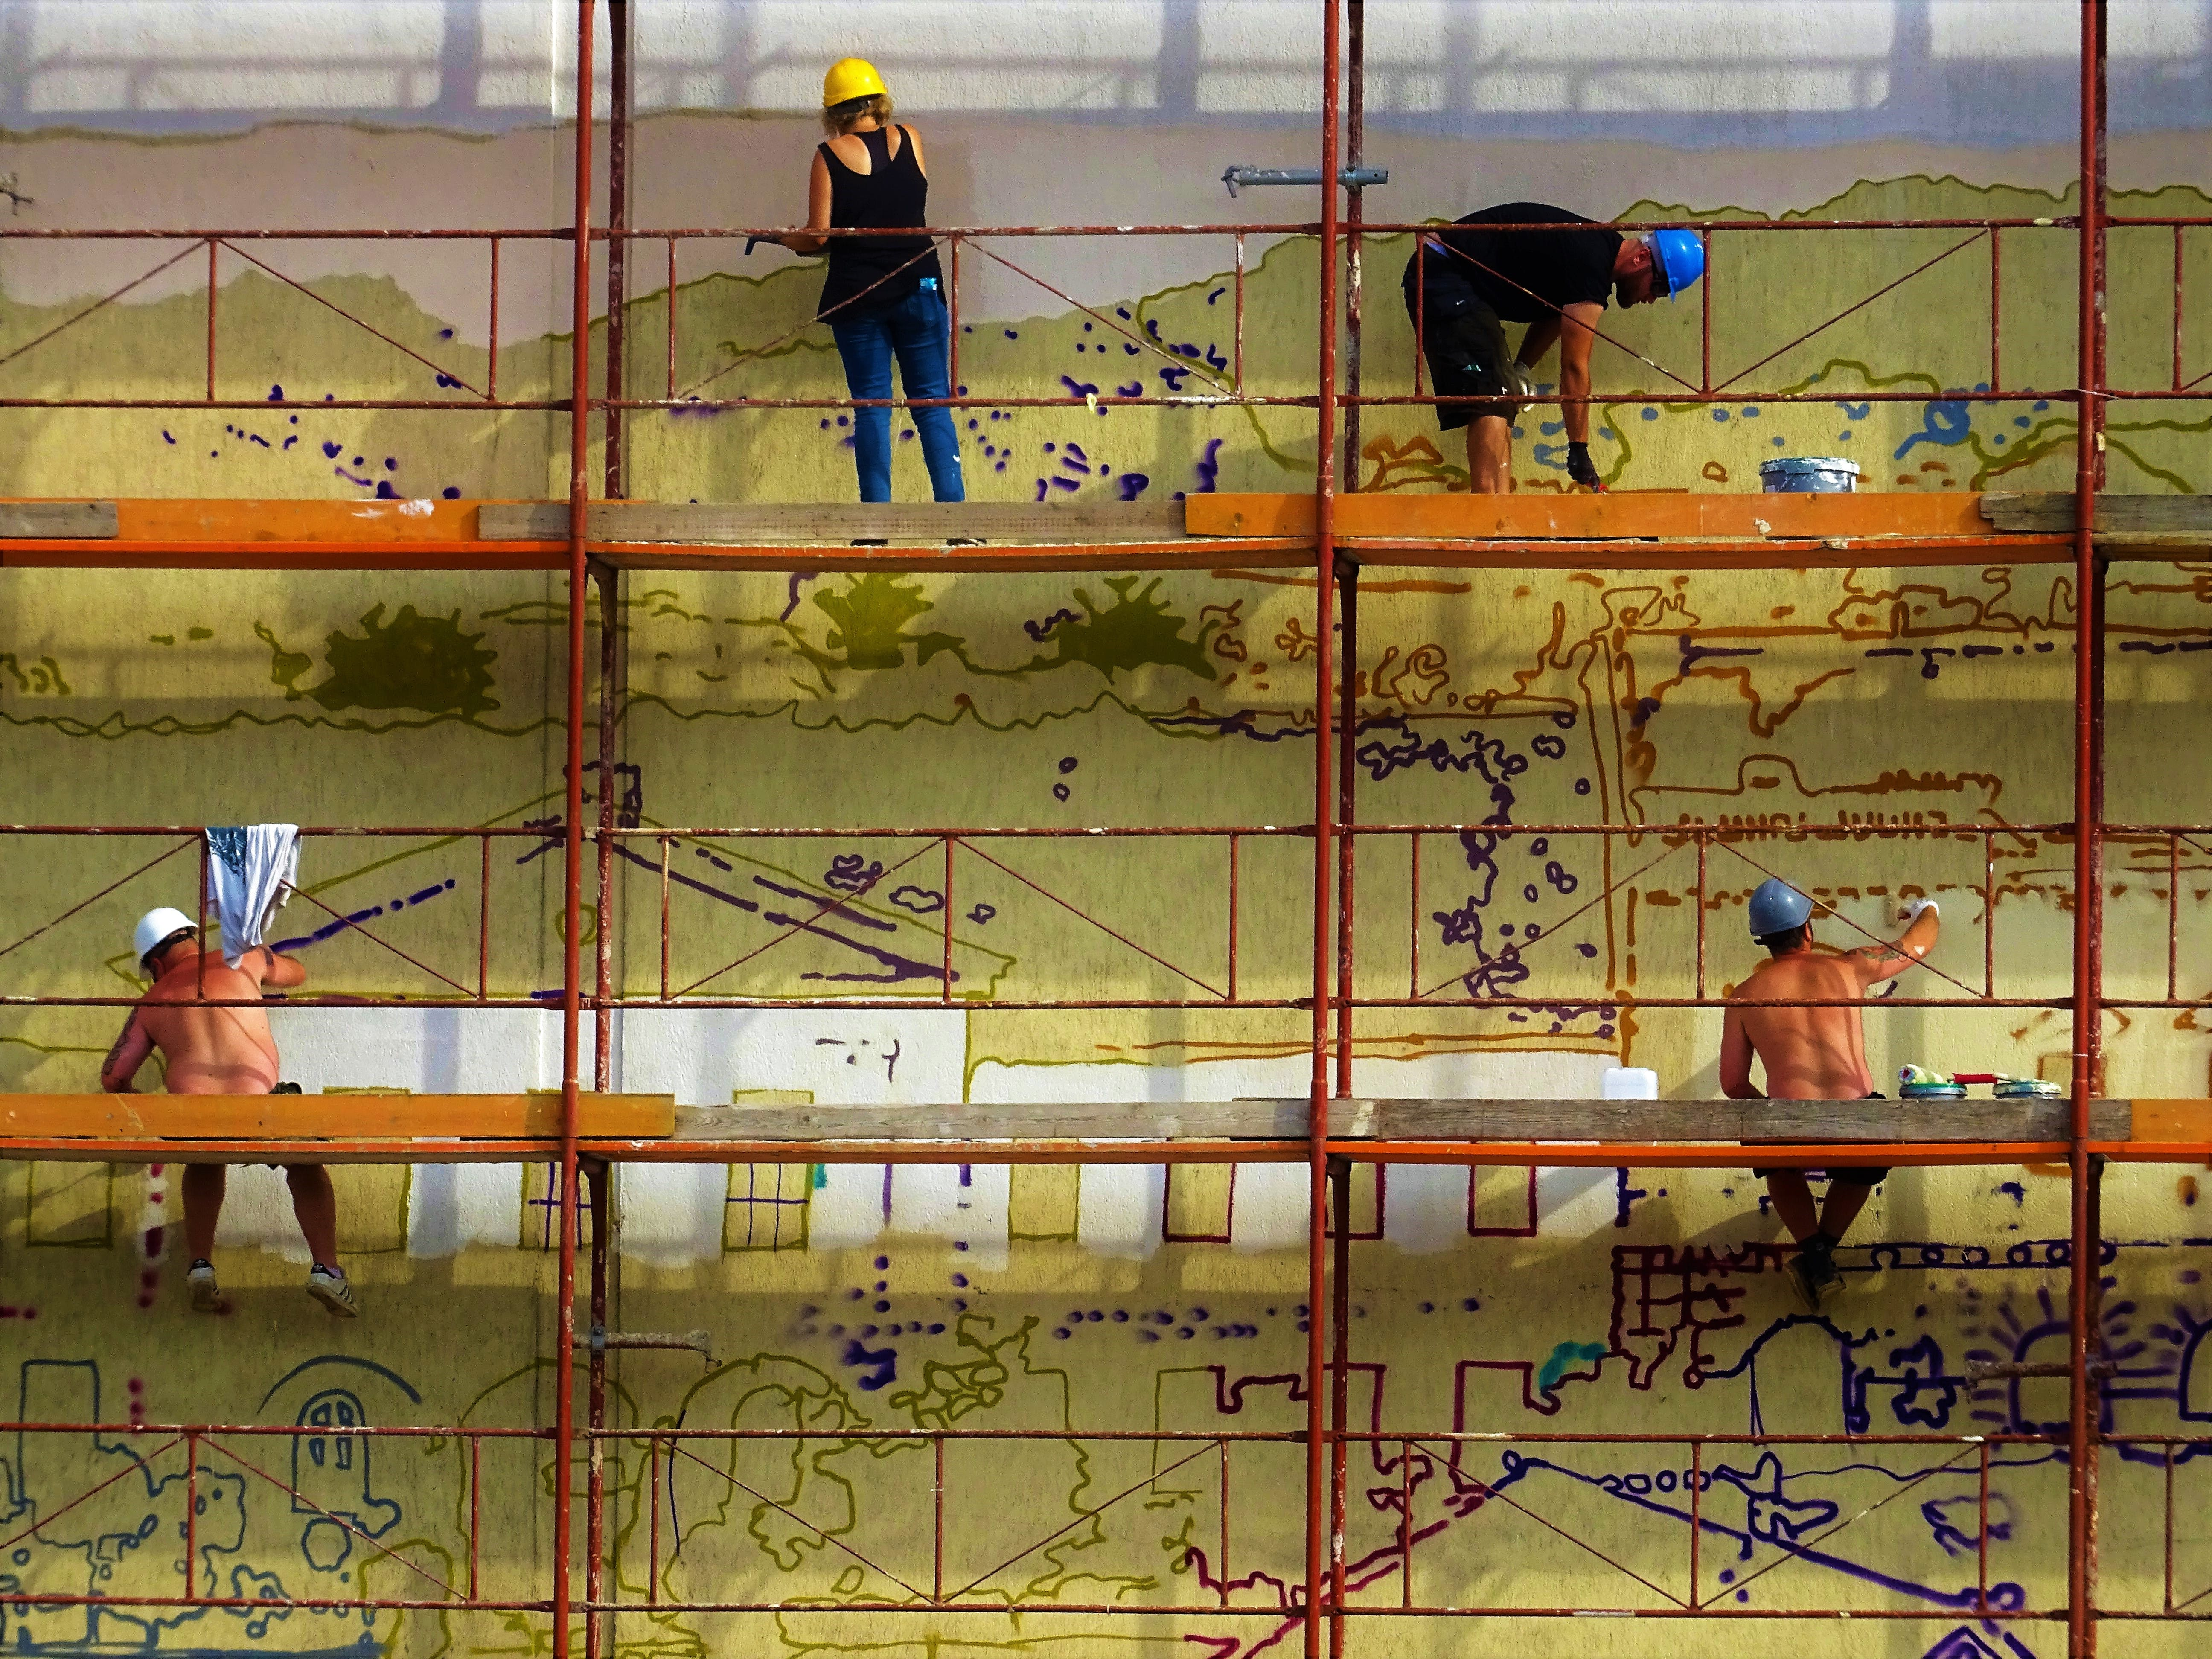 Four People Painting Wall on Scaffolding